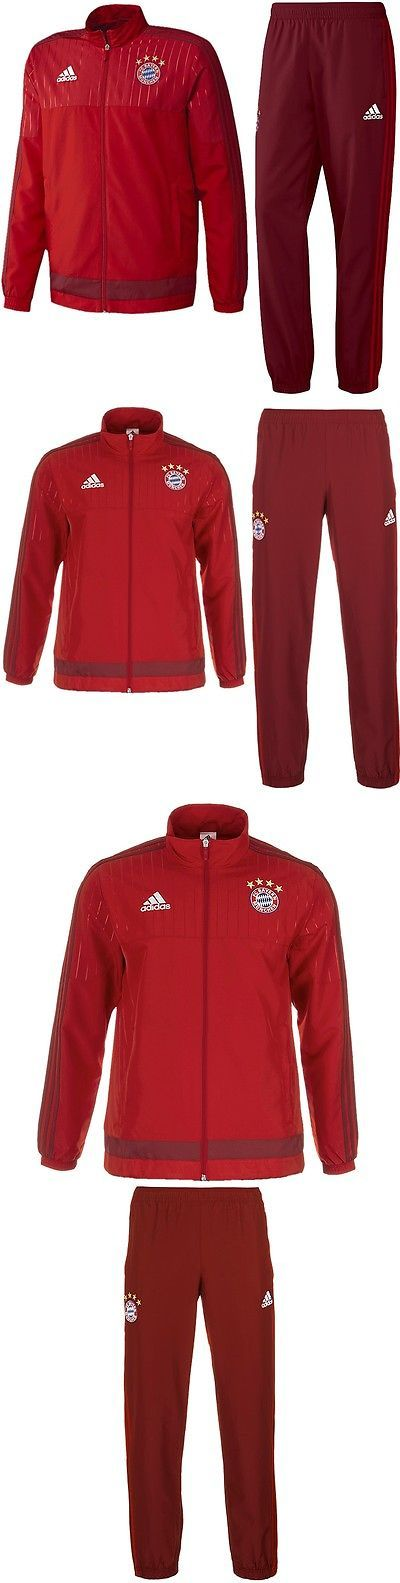 Track Suits 59339: Adidas Fc Bayern Pres Men S Track Suit Fc Bayern Red Jogging Sports Suit New -> BUY IT NOW ONLY: $105.29 on eBay!